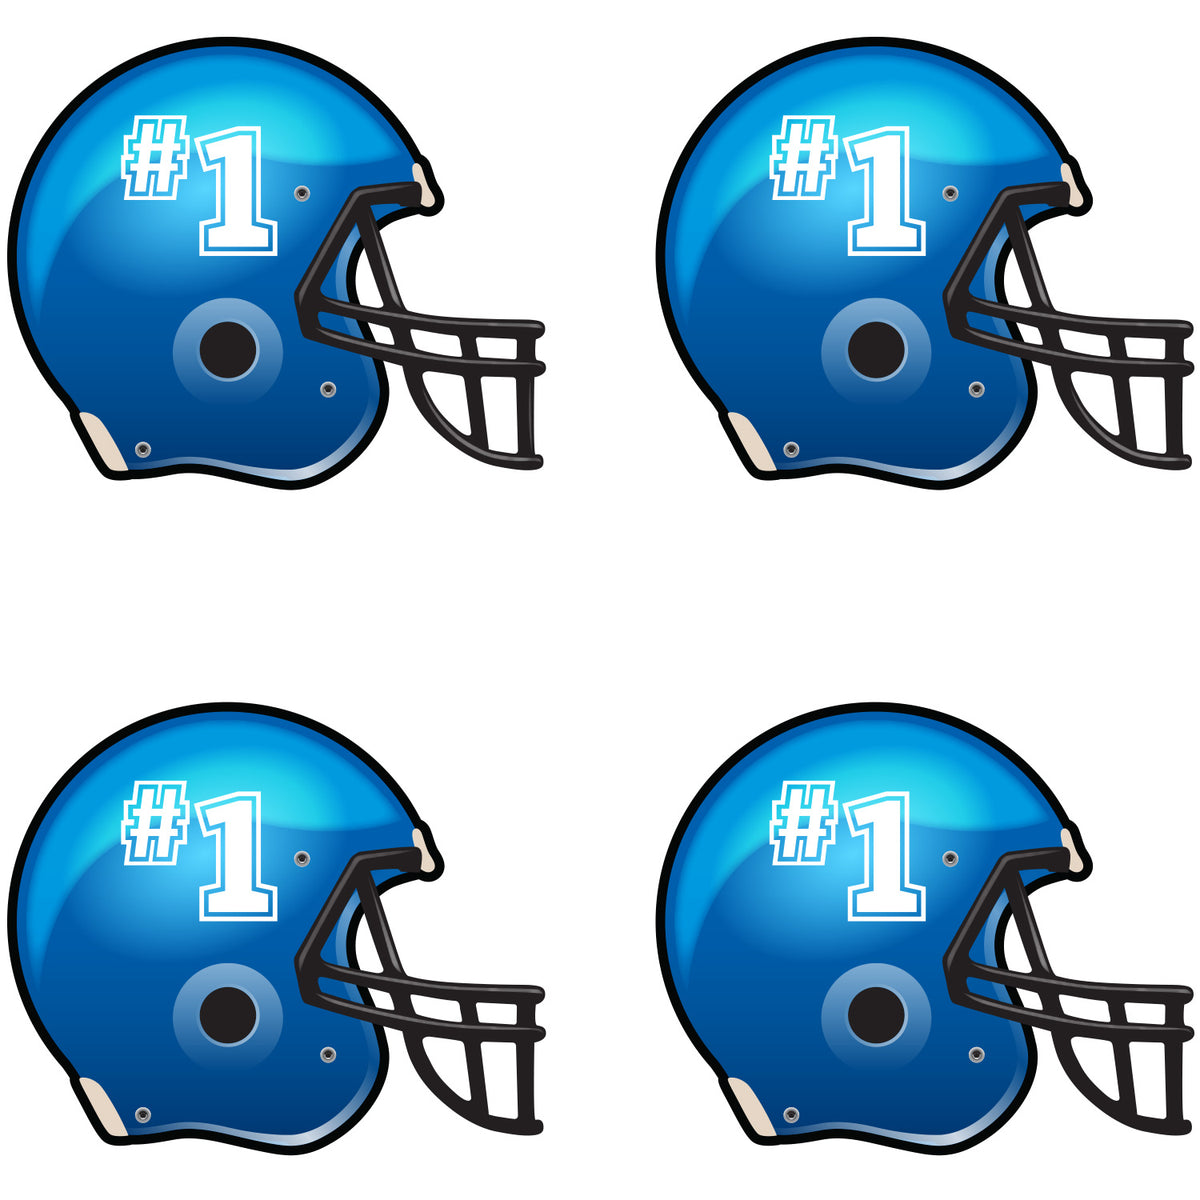 Blue Football Helmet Waterless Tattoos